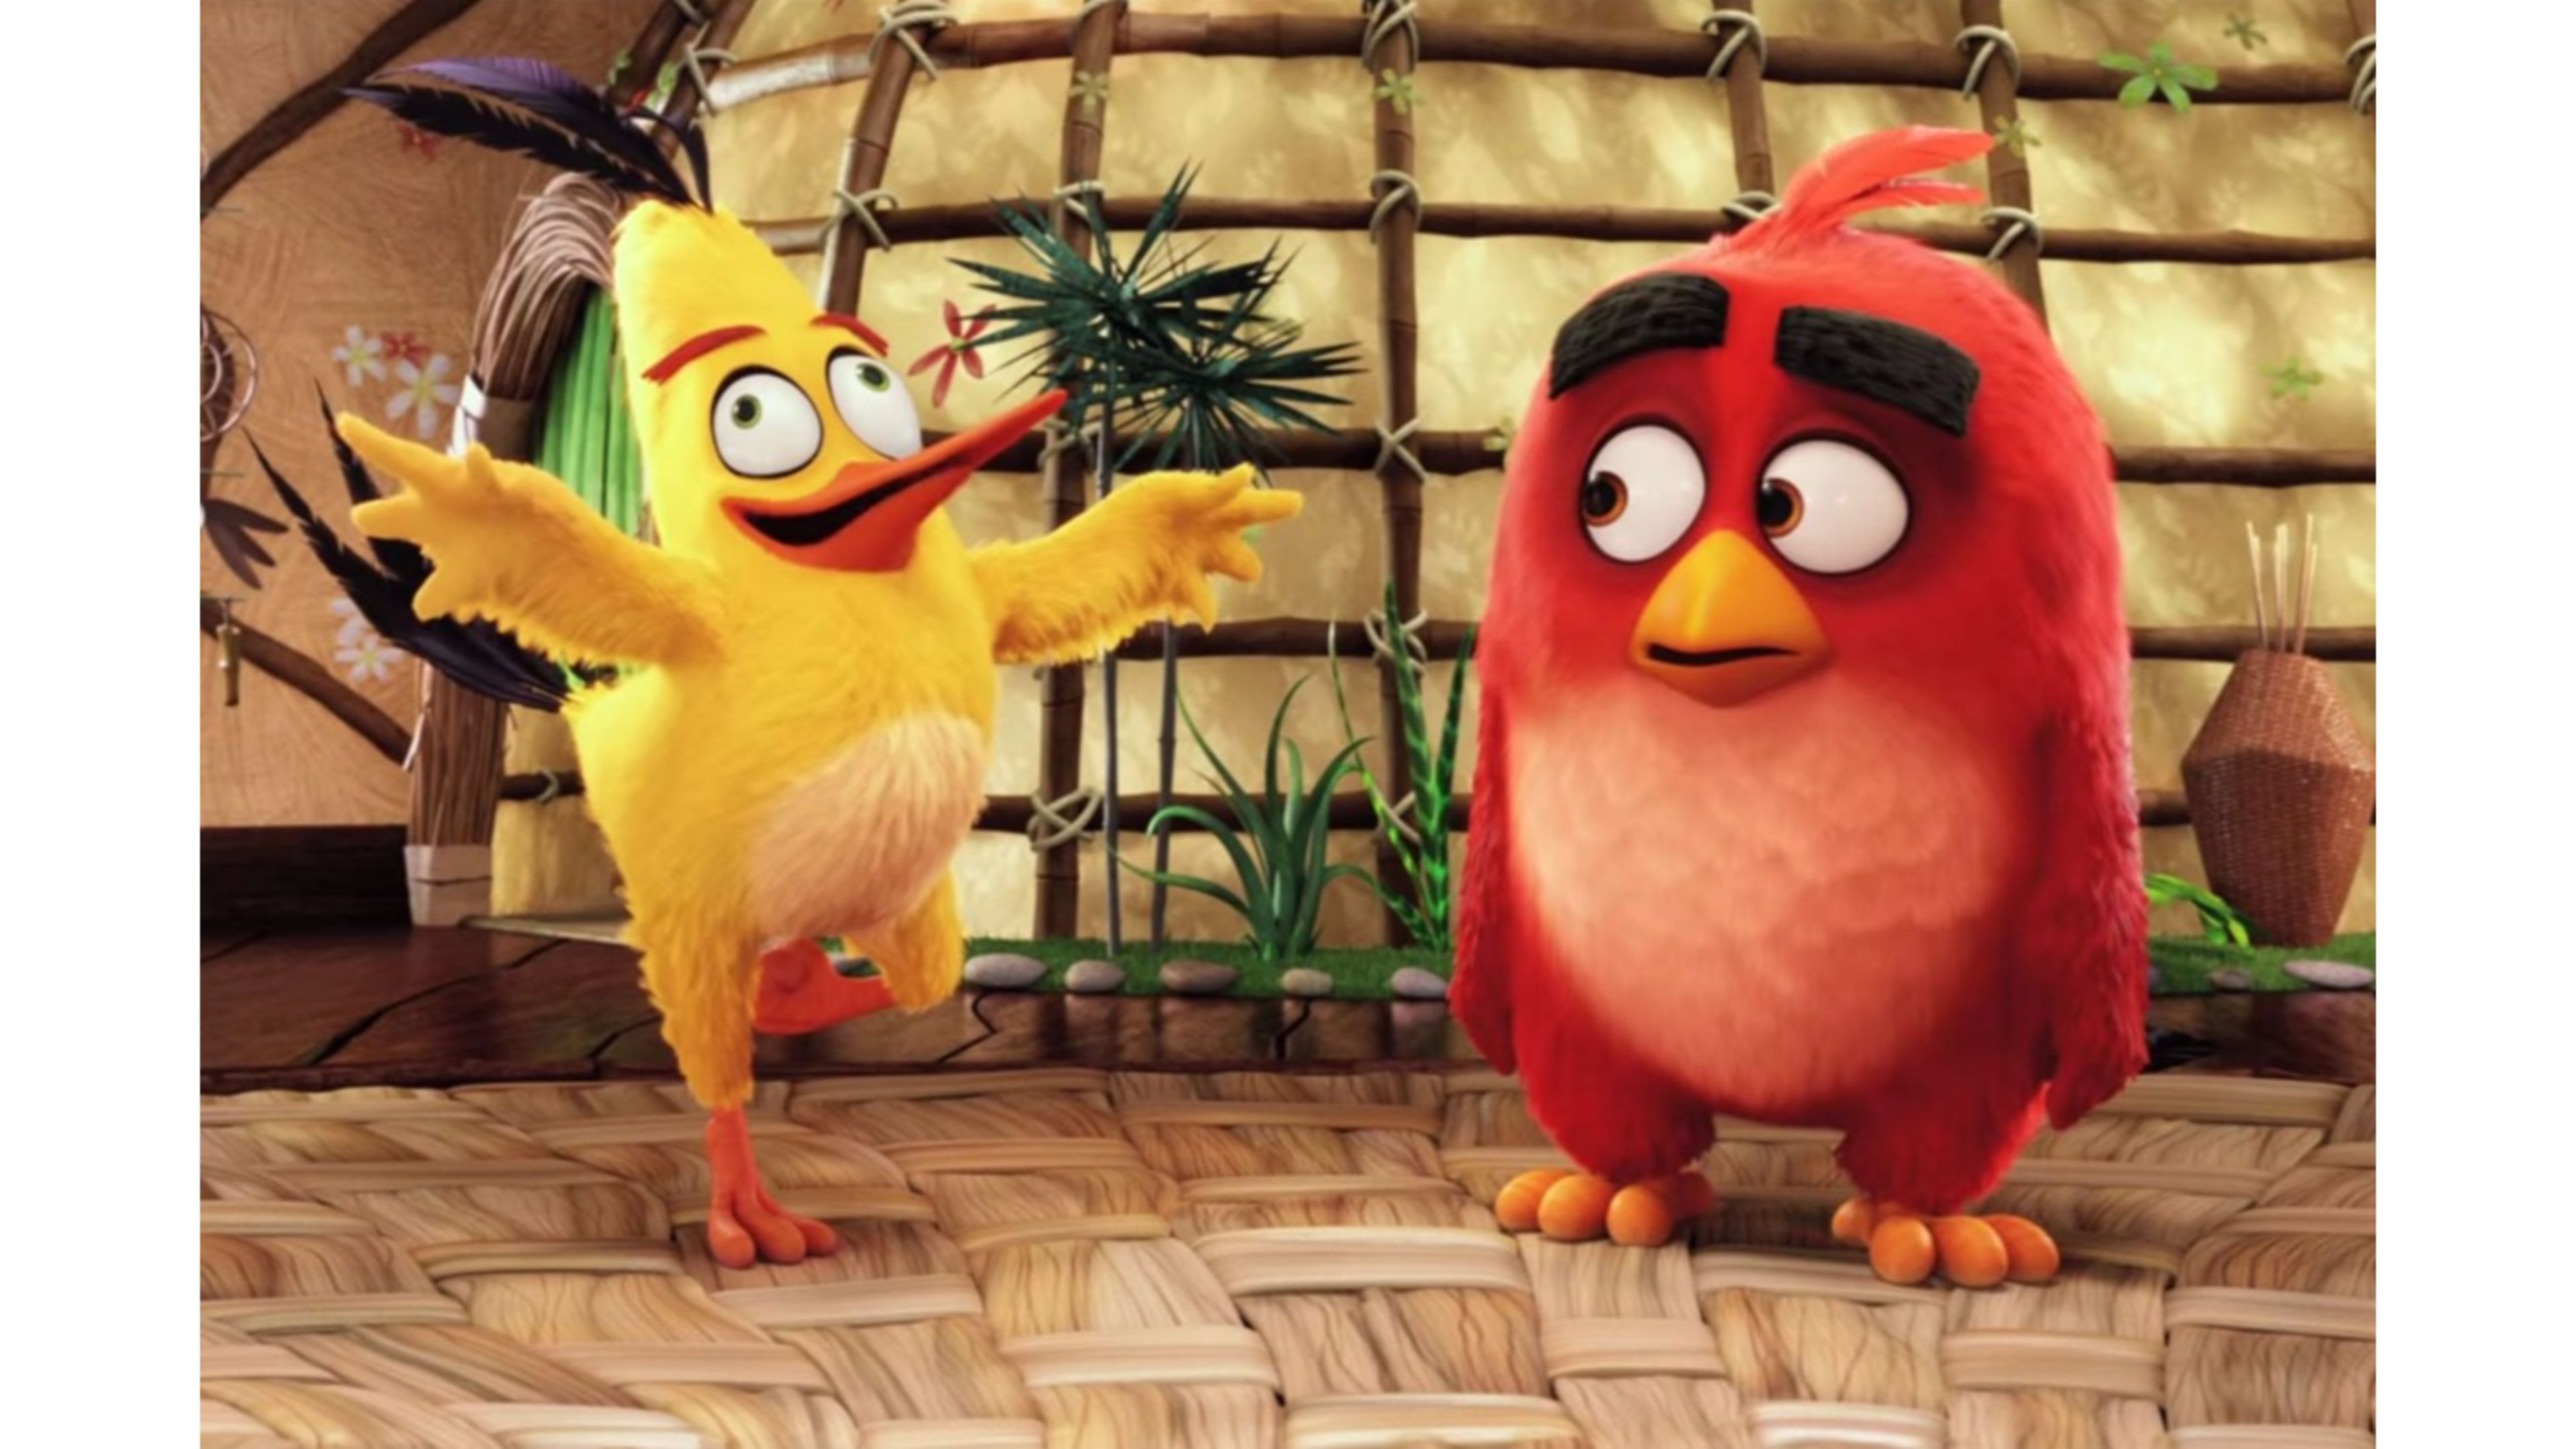 Trending The Angry Birds Movie wallpaper